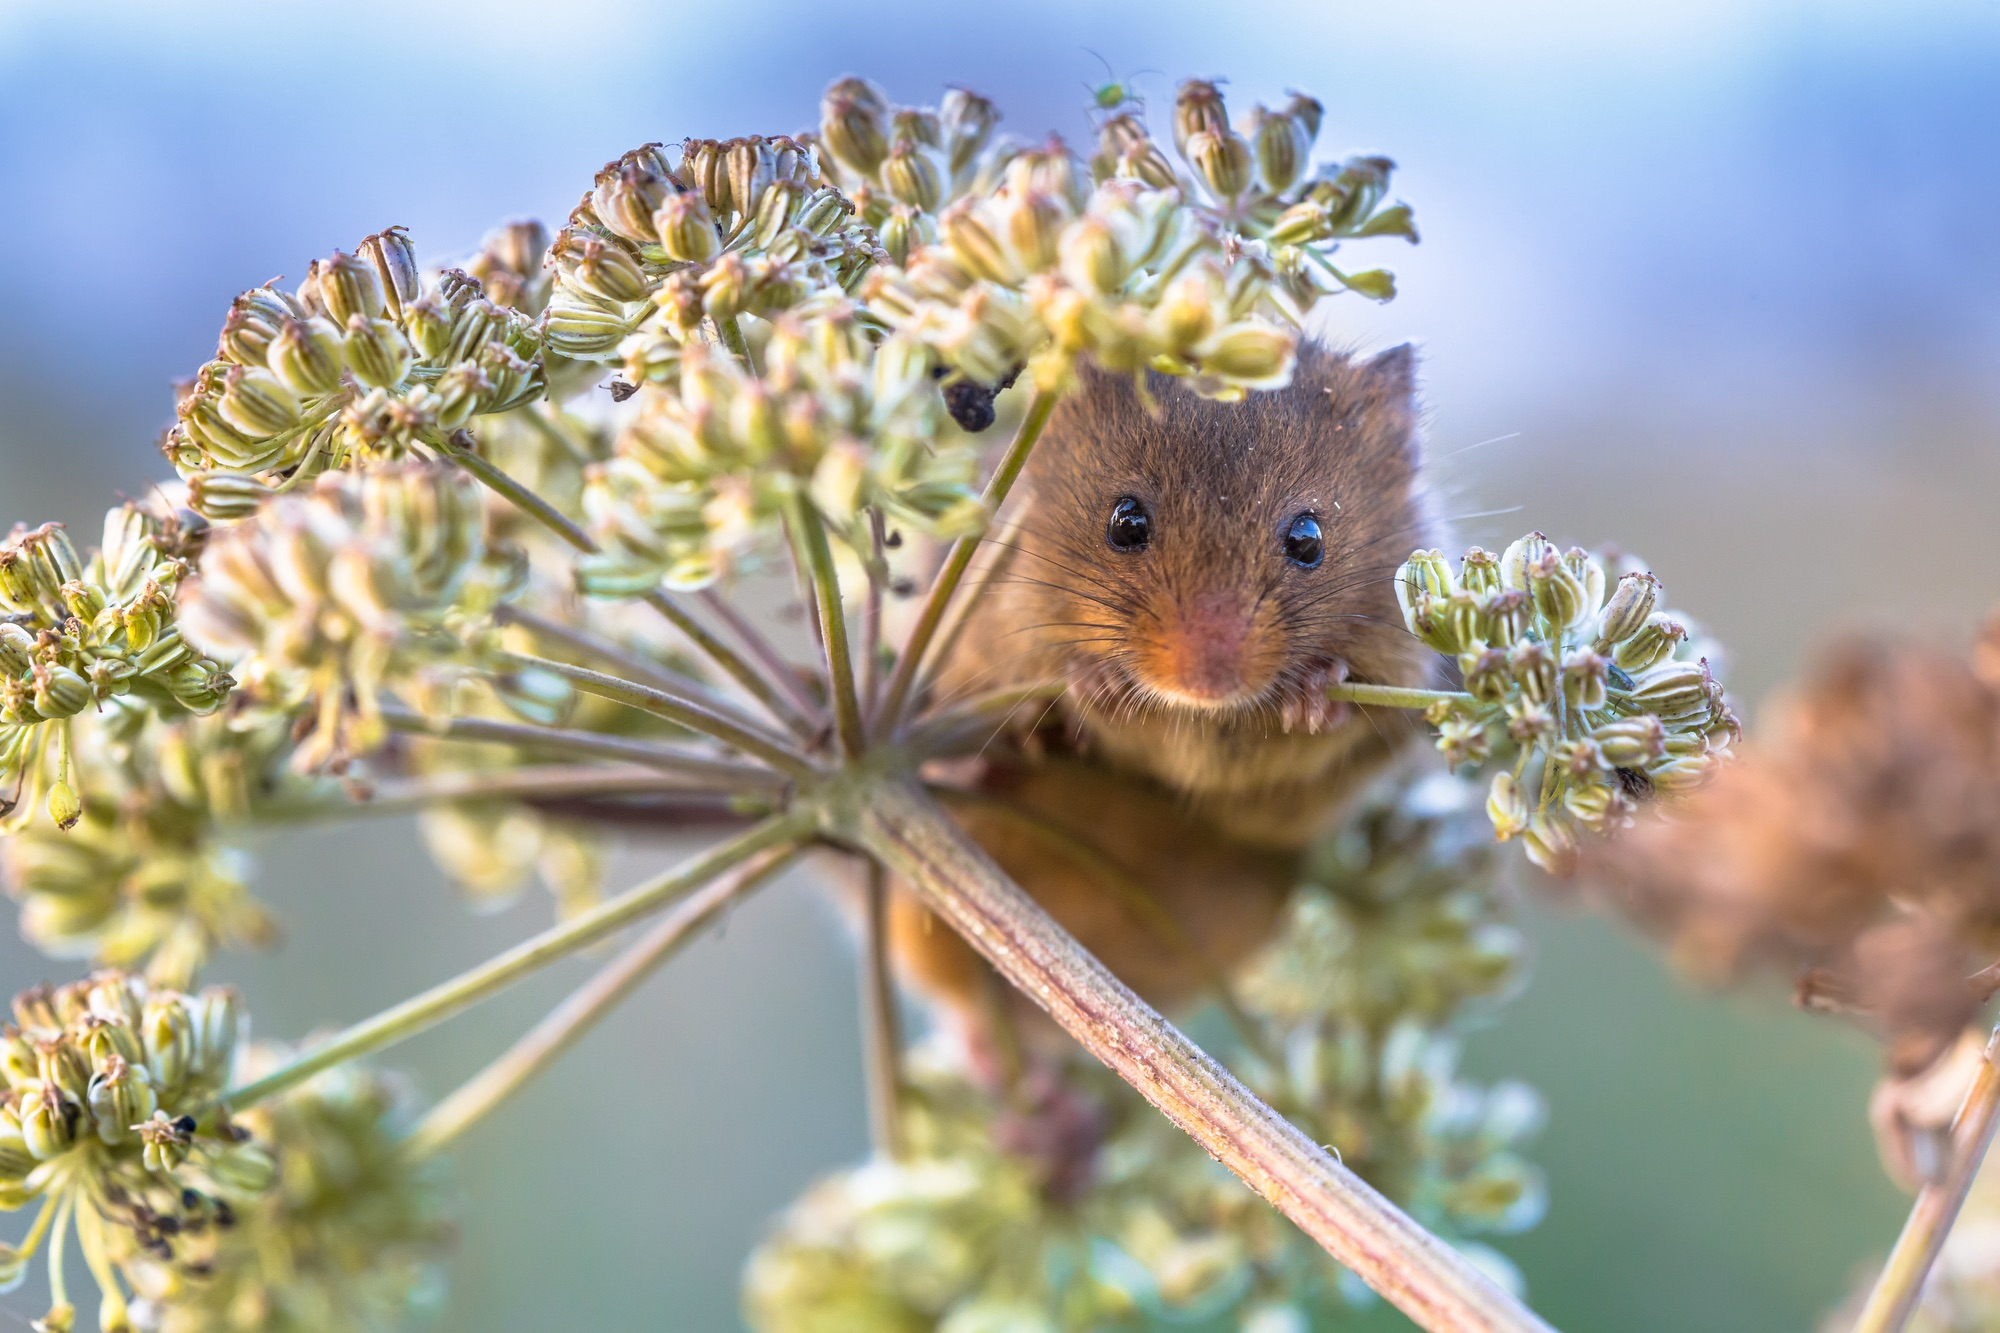 SS_Eurasian Harvest mouse (Micromys minutus) feeding on seeds of cow parsley (Anthriscus sylvestris) and looking in the camera